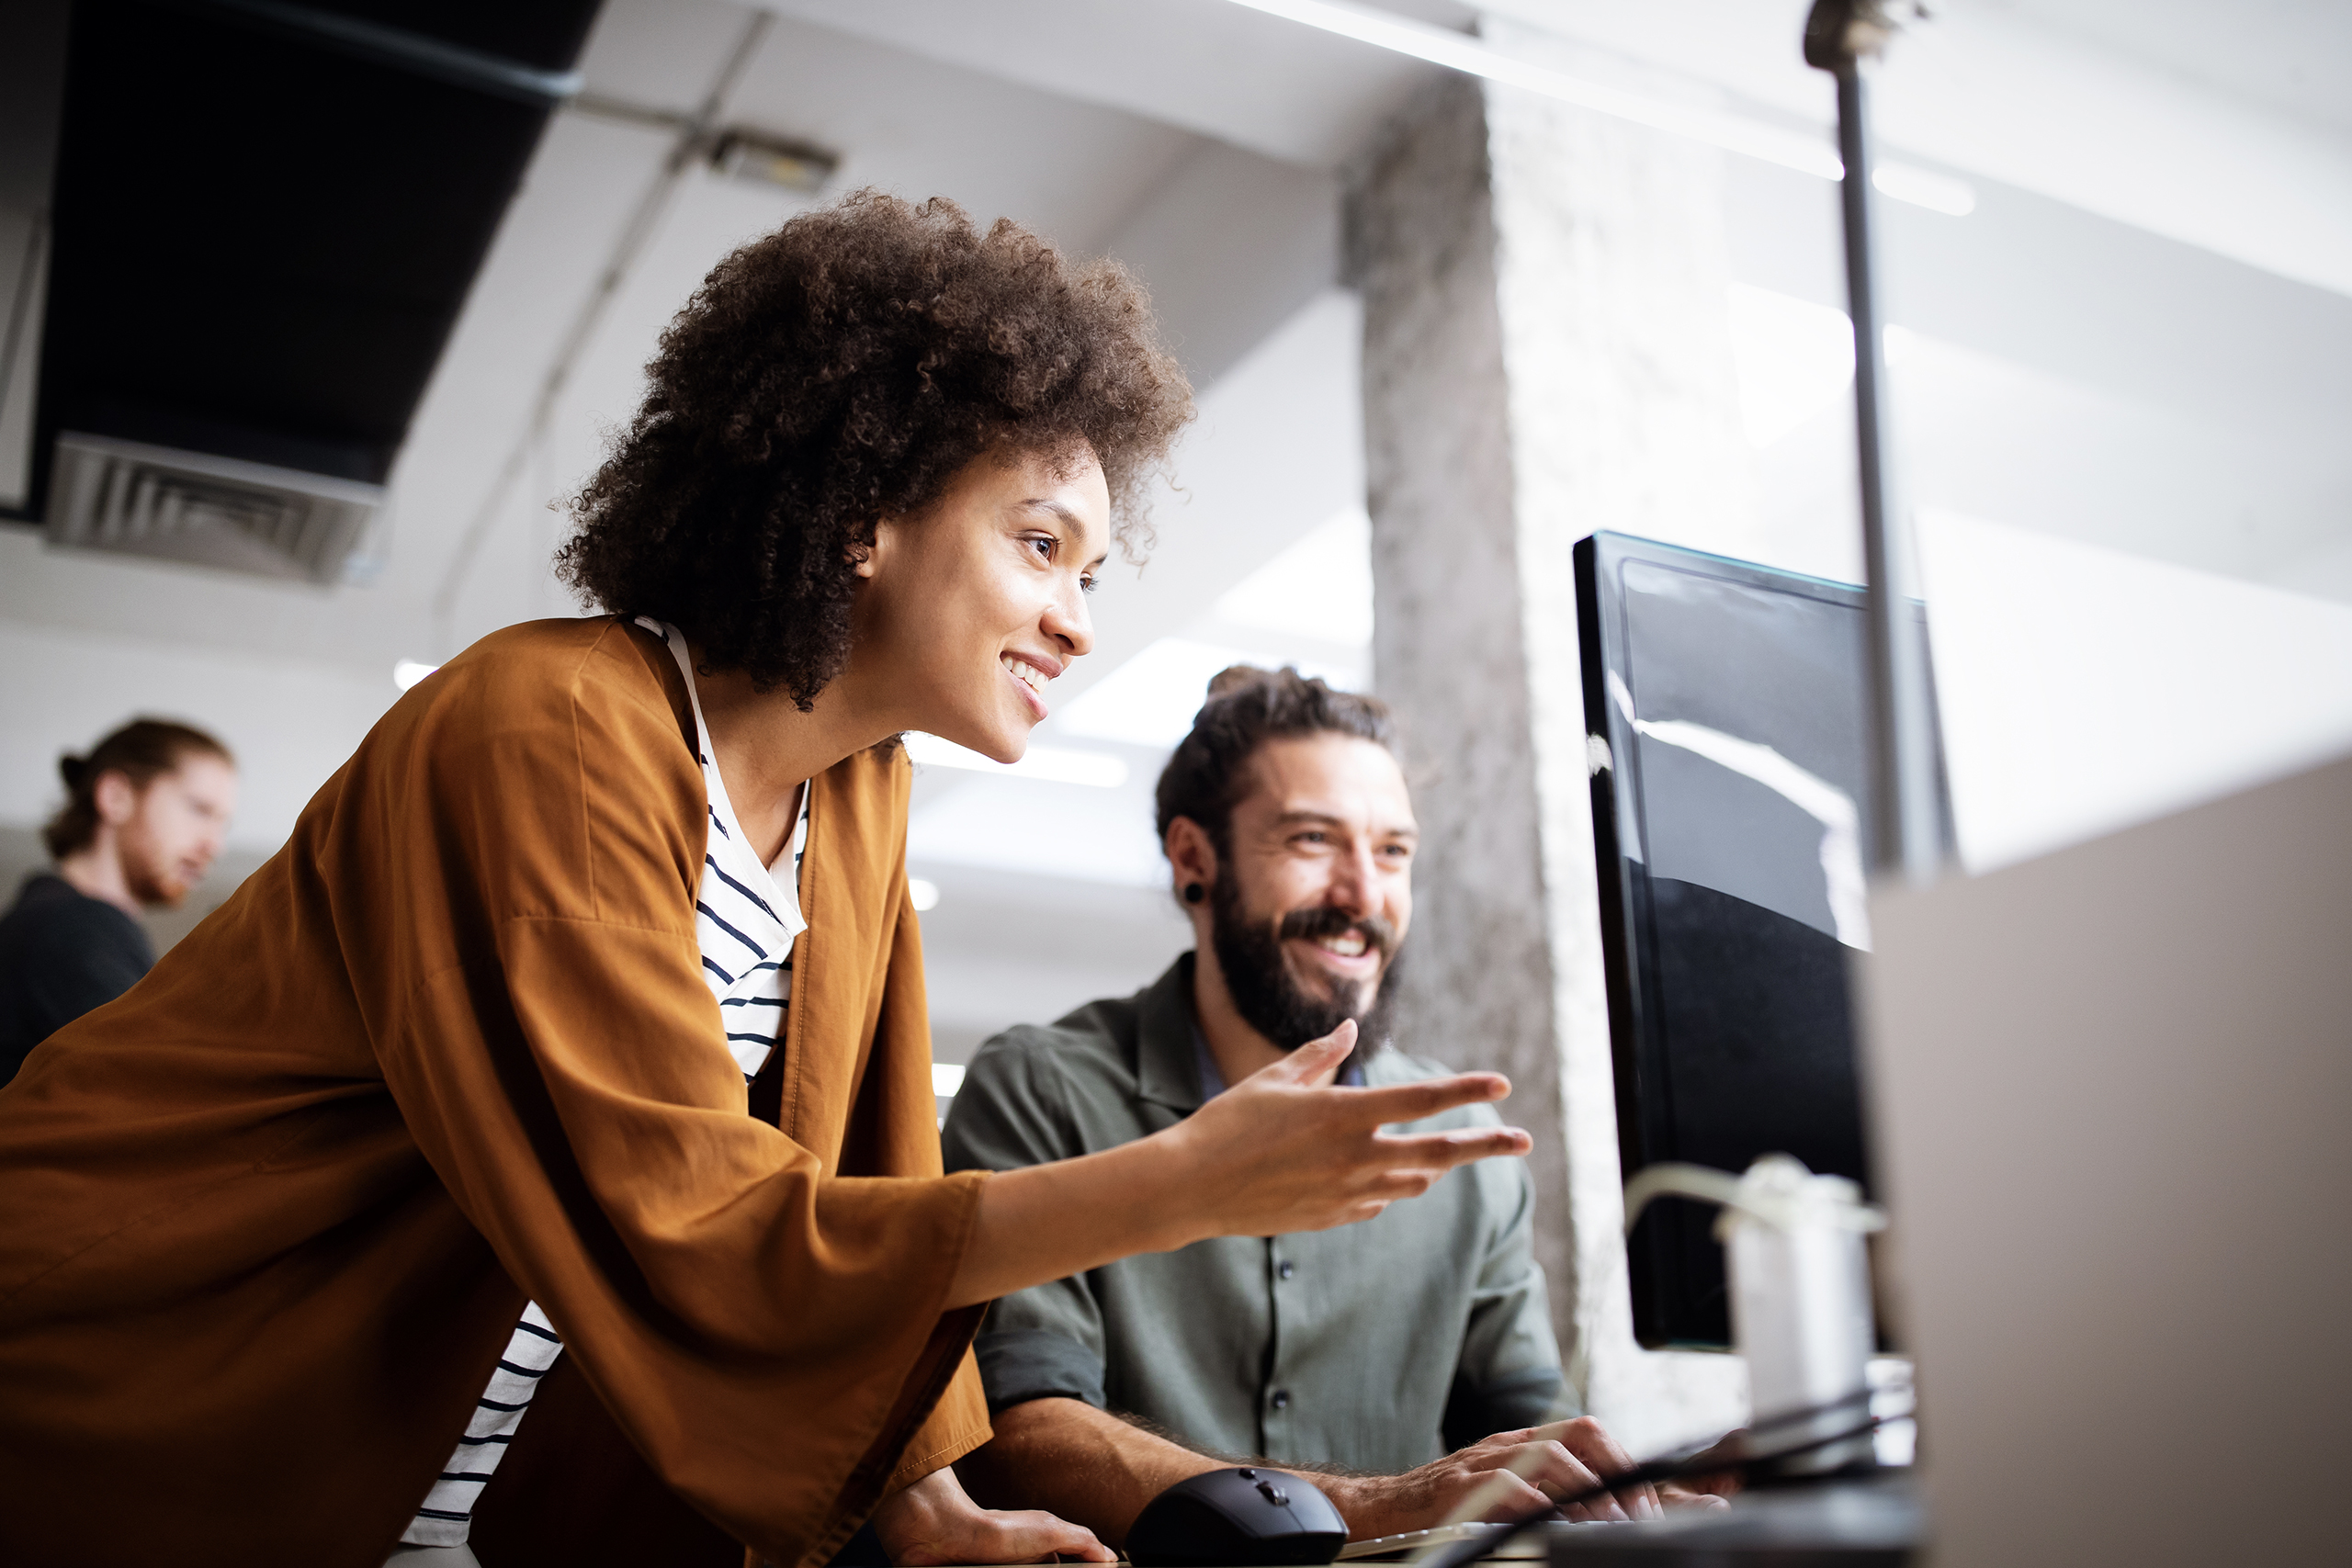 WOman helping man with computer IT problem